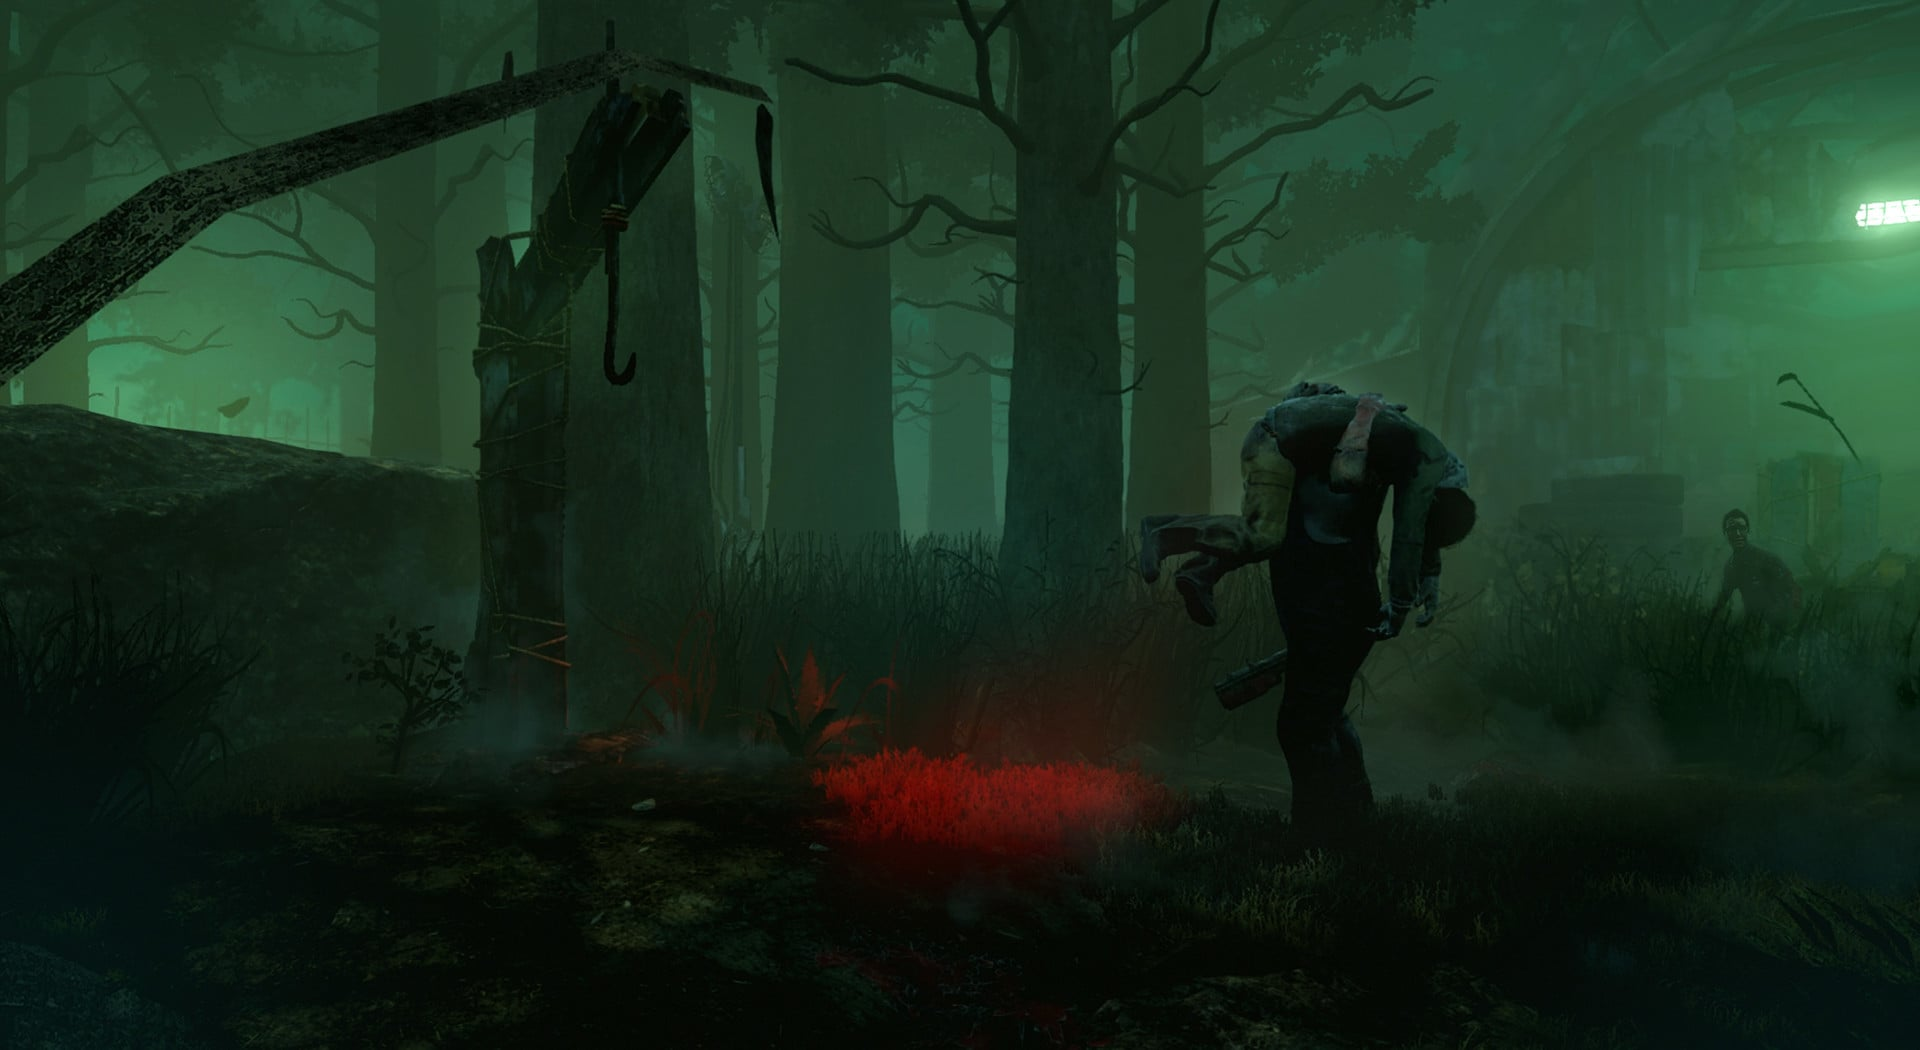 Dead by Daylight | Stranger Things Edition (PC) - Steam Key - GLOBAL - 4